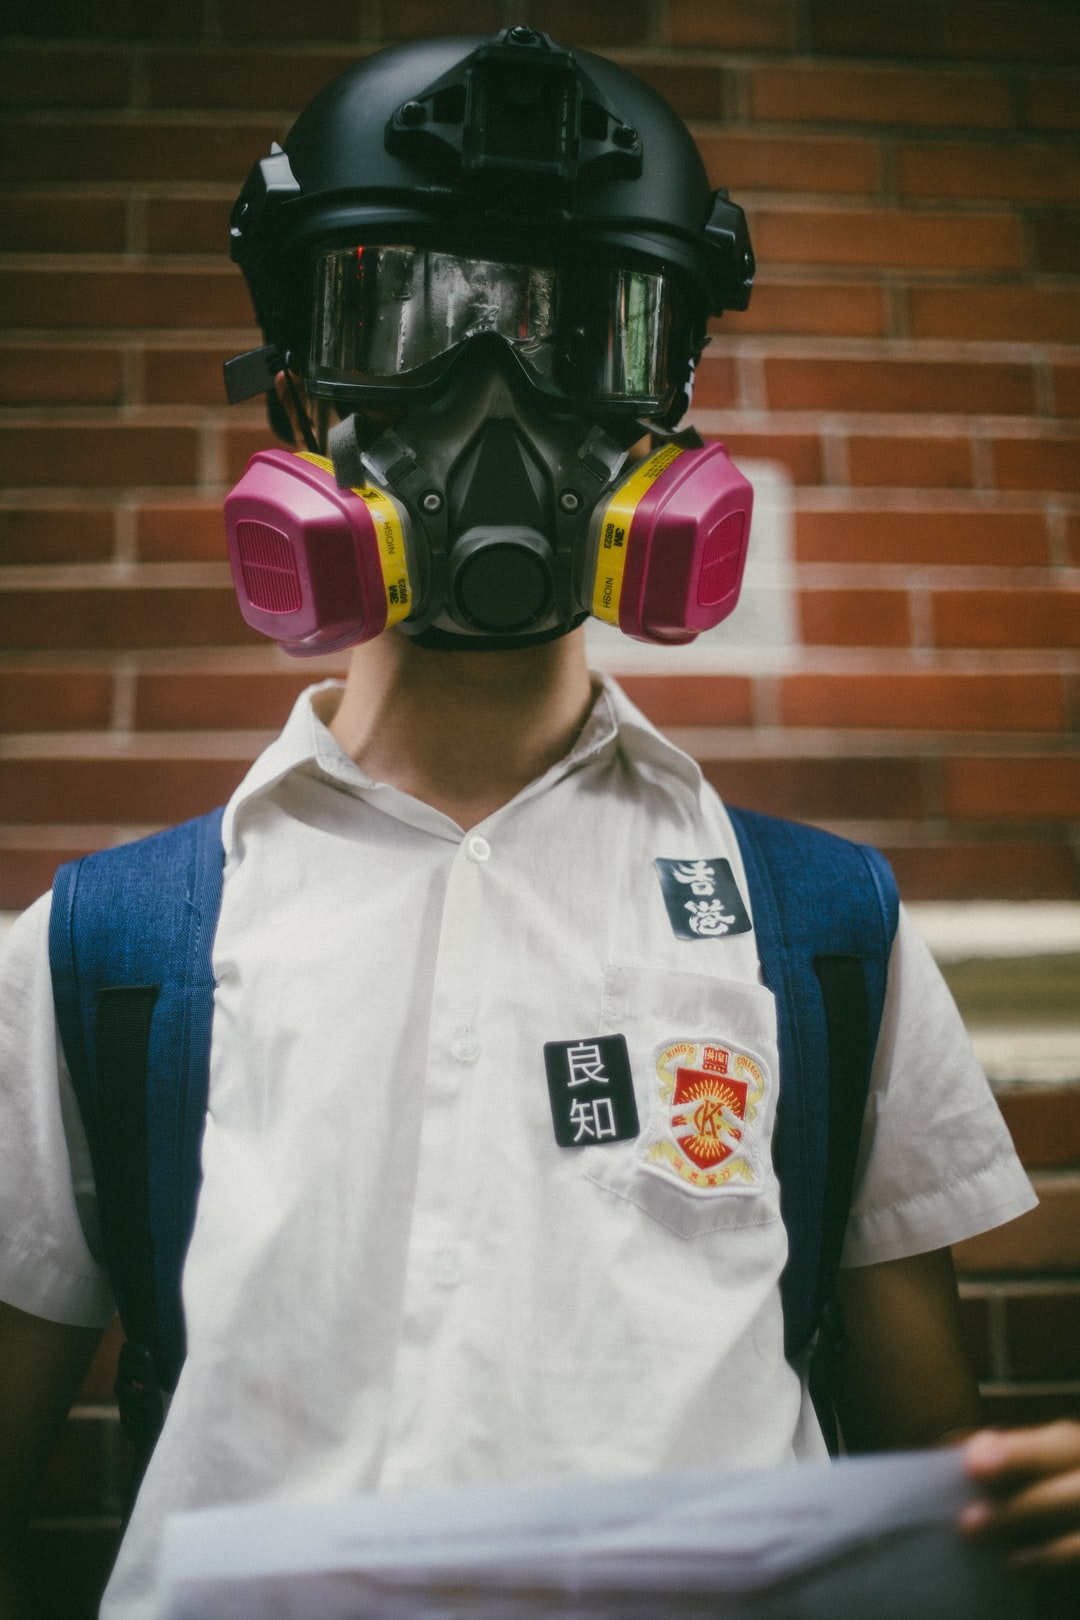 After a summer of demonstrating in the streets, high school students in Hong Kong starting the new school year on Monday arrived to class wearing gas masks and joined hands to form human chains. Stickers on the shirt read 'Hong Kong' and 'conscience' demanding a call for universal suffrage in Hong Kong and an independent inquiry into accusations of police brutality - September 2019